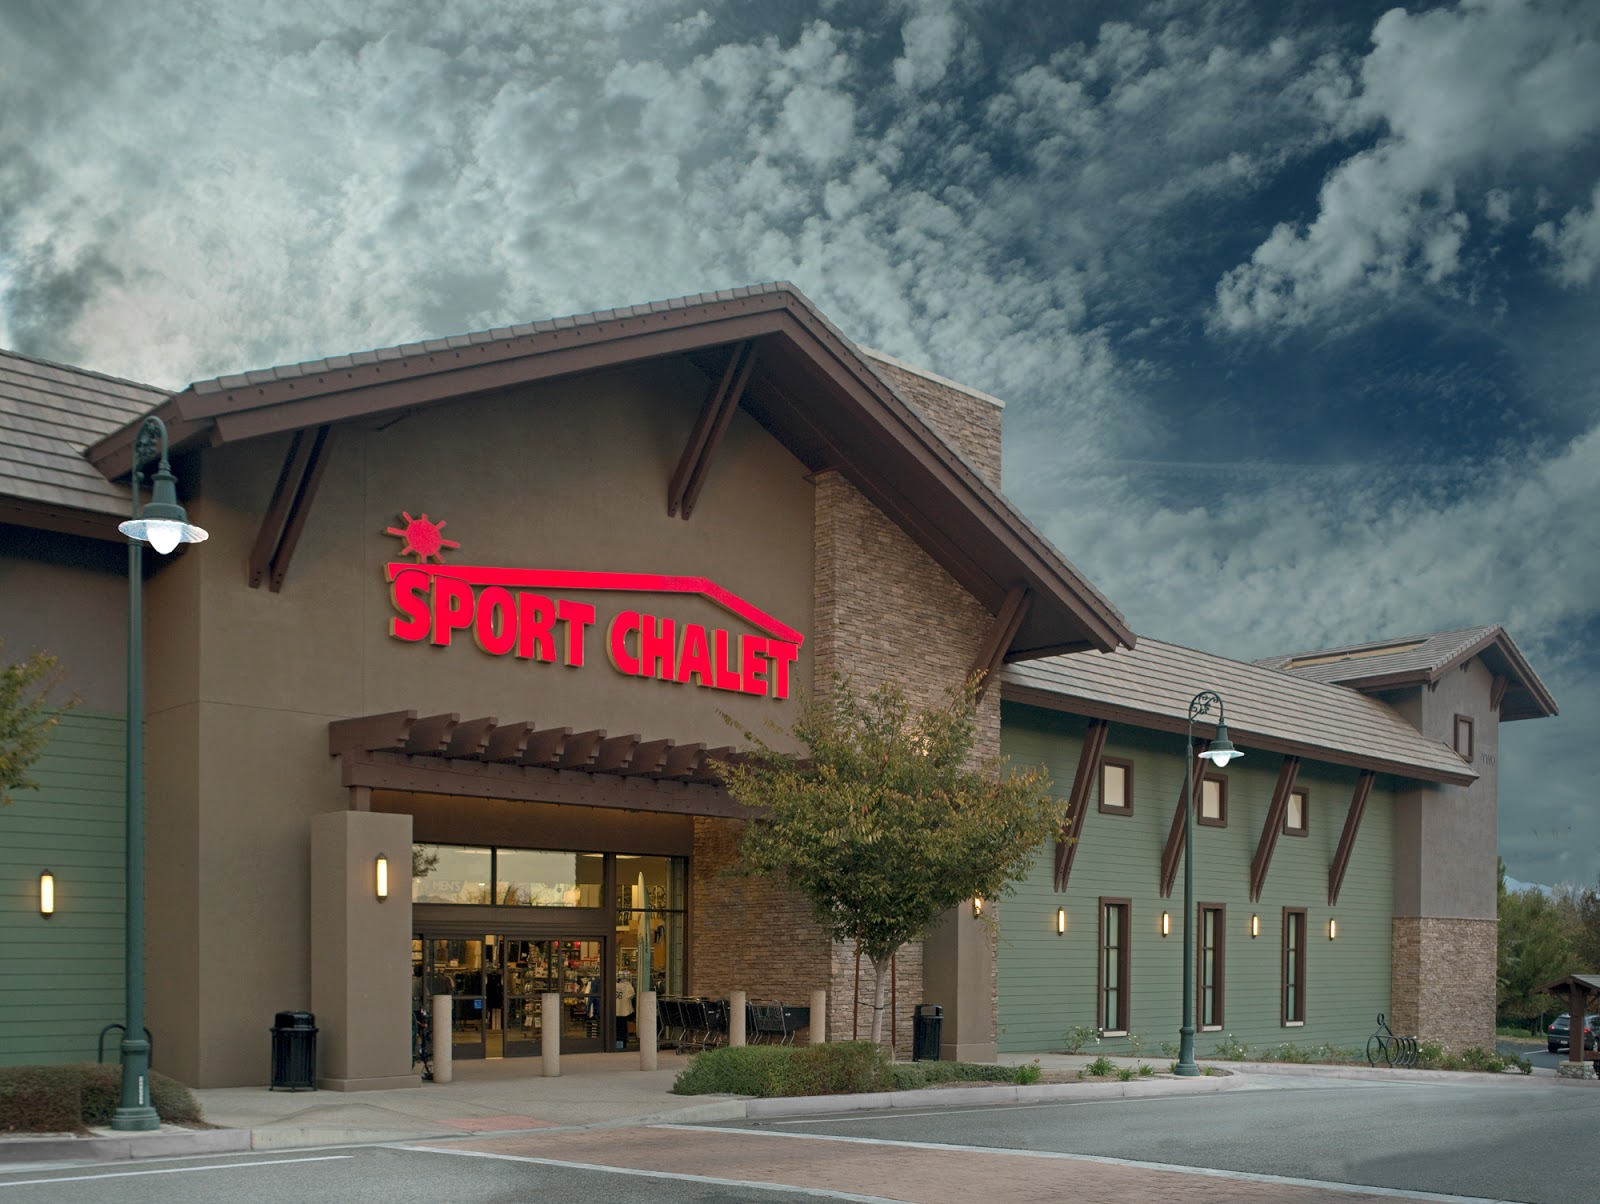 Sports Authority/Chalet Closing Down | The Panther Press